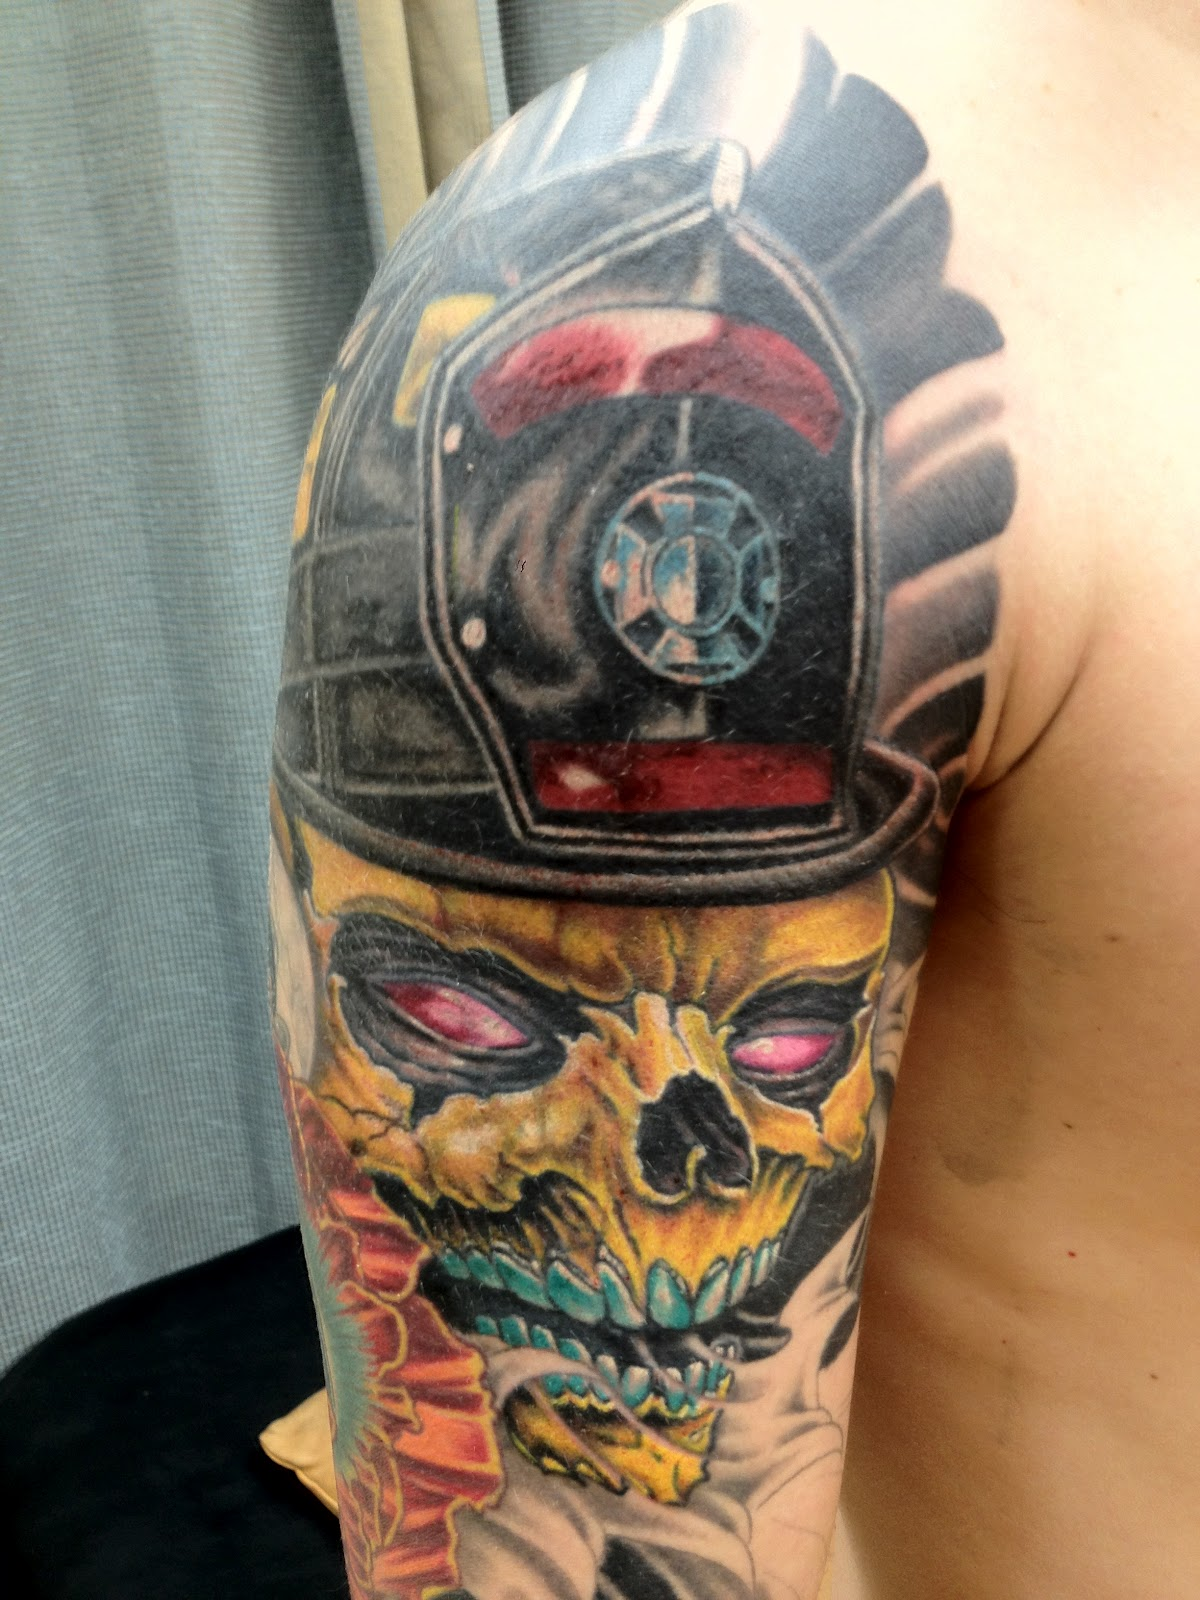 Firefighter Helmet And Skull Tattoos On Half Sleeve